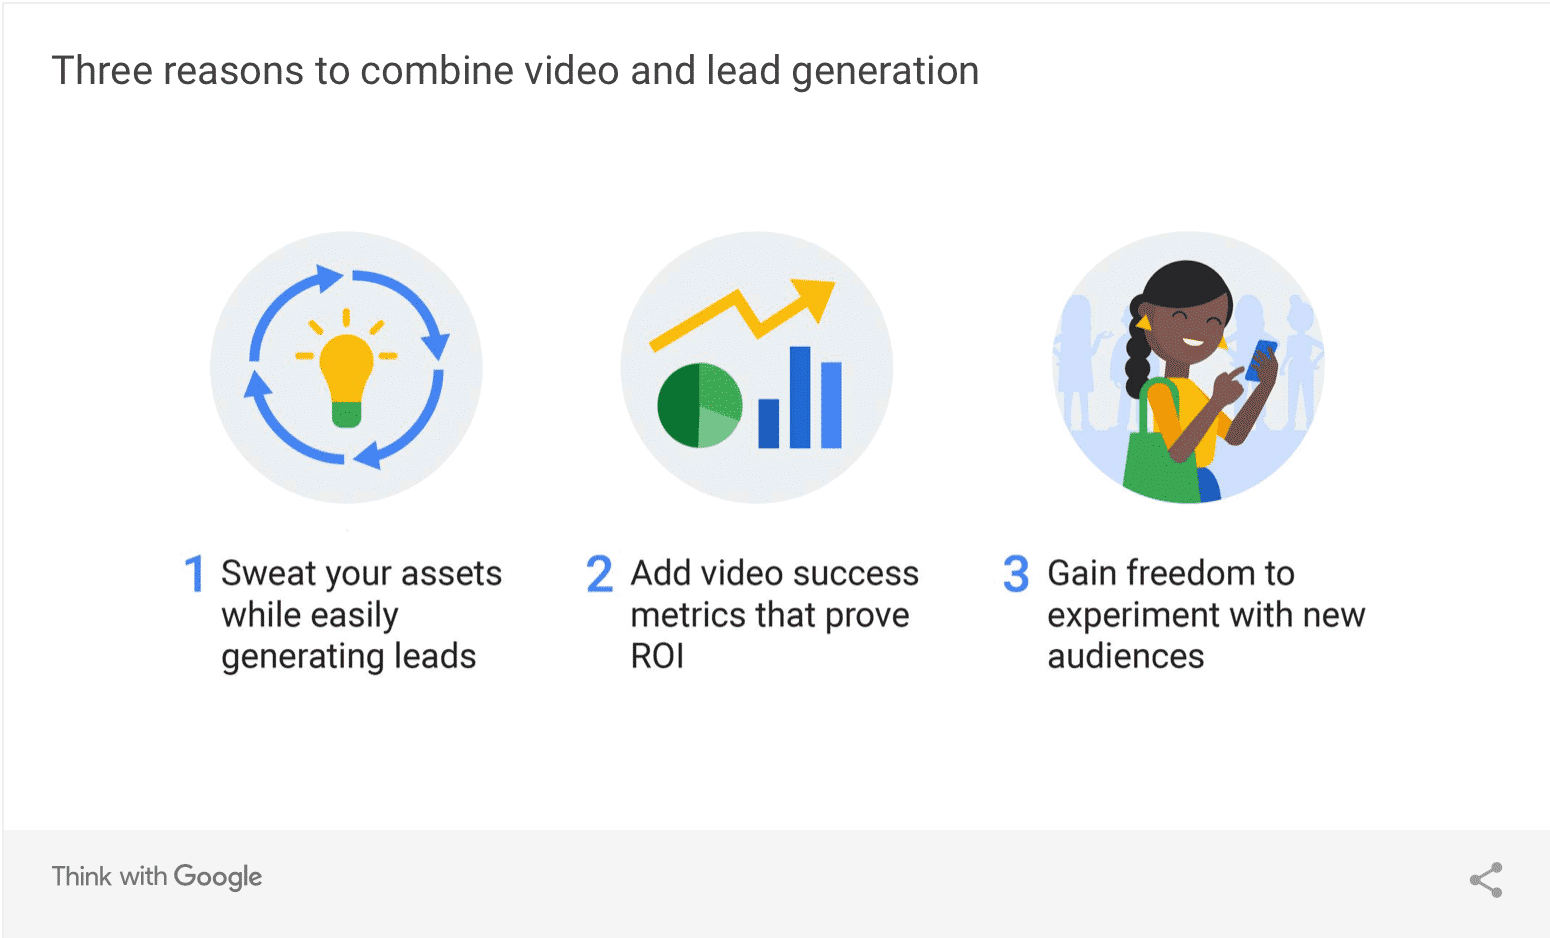 YouTube lead form ads